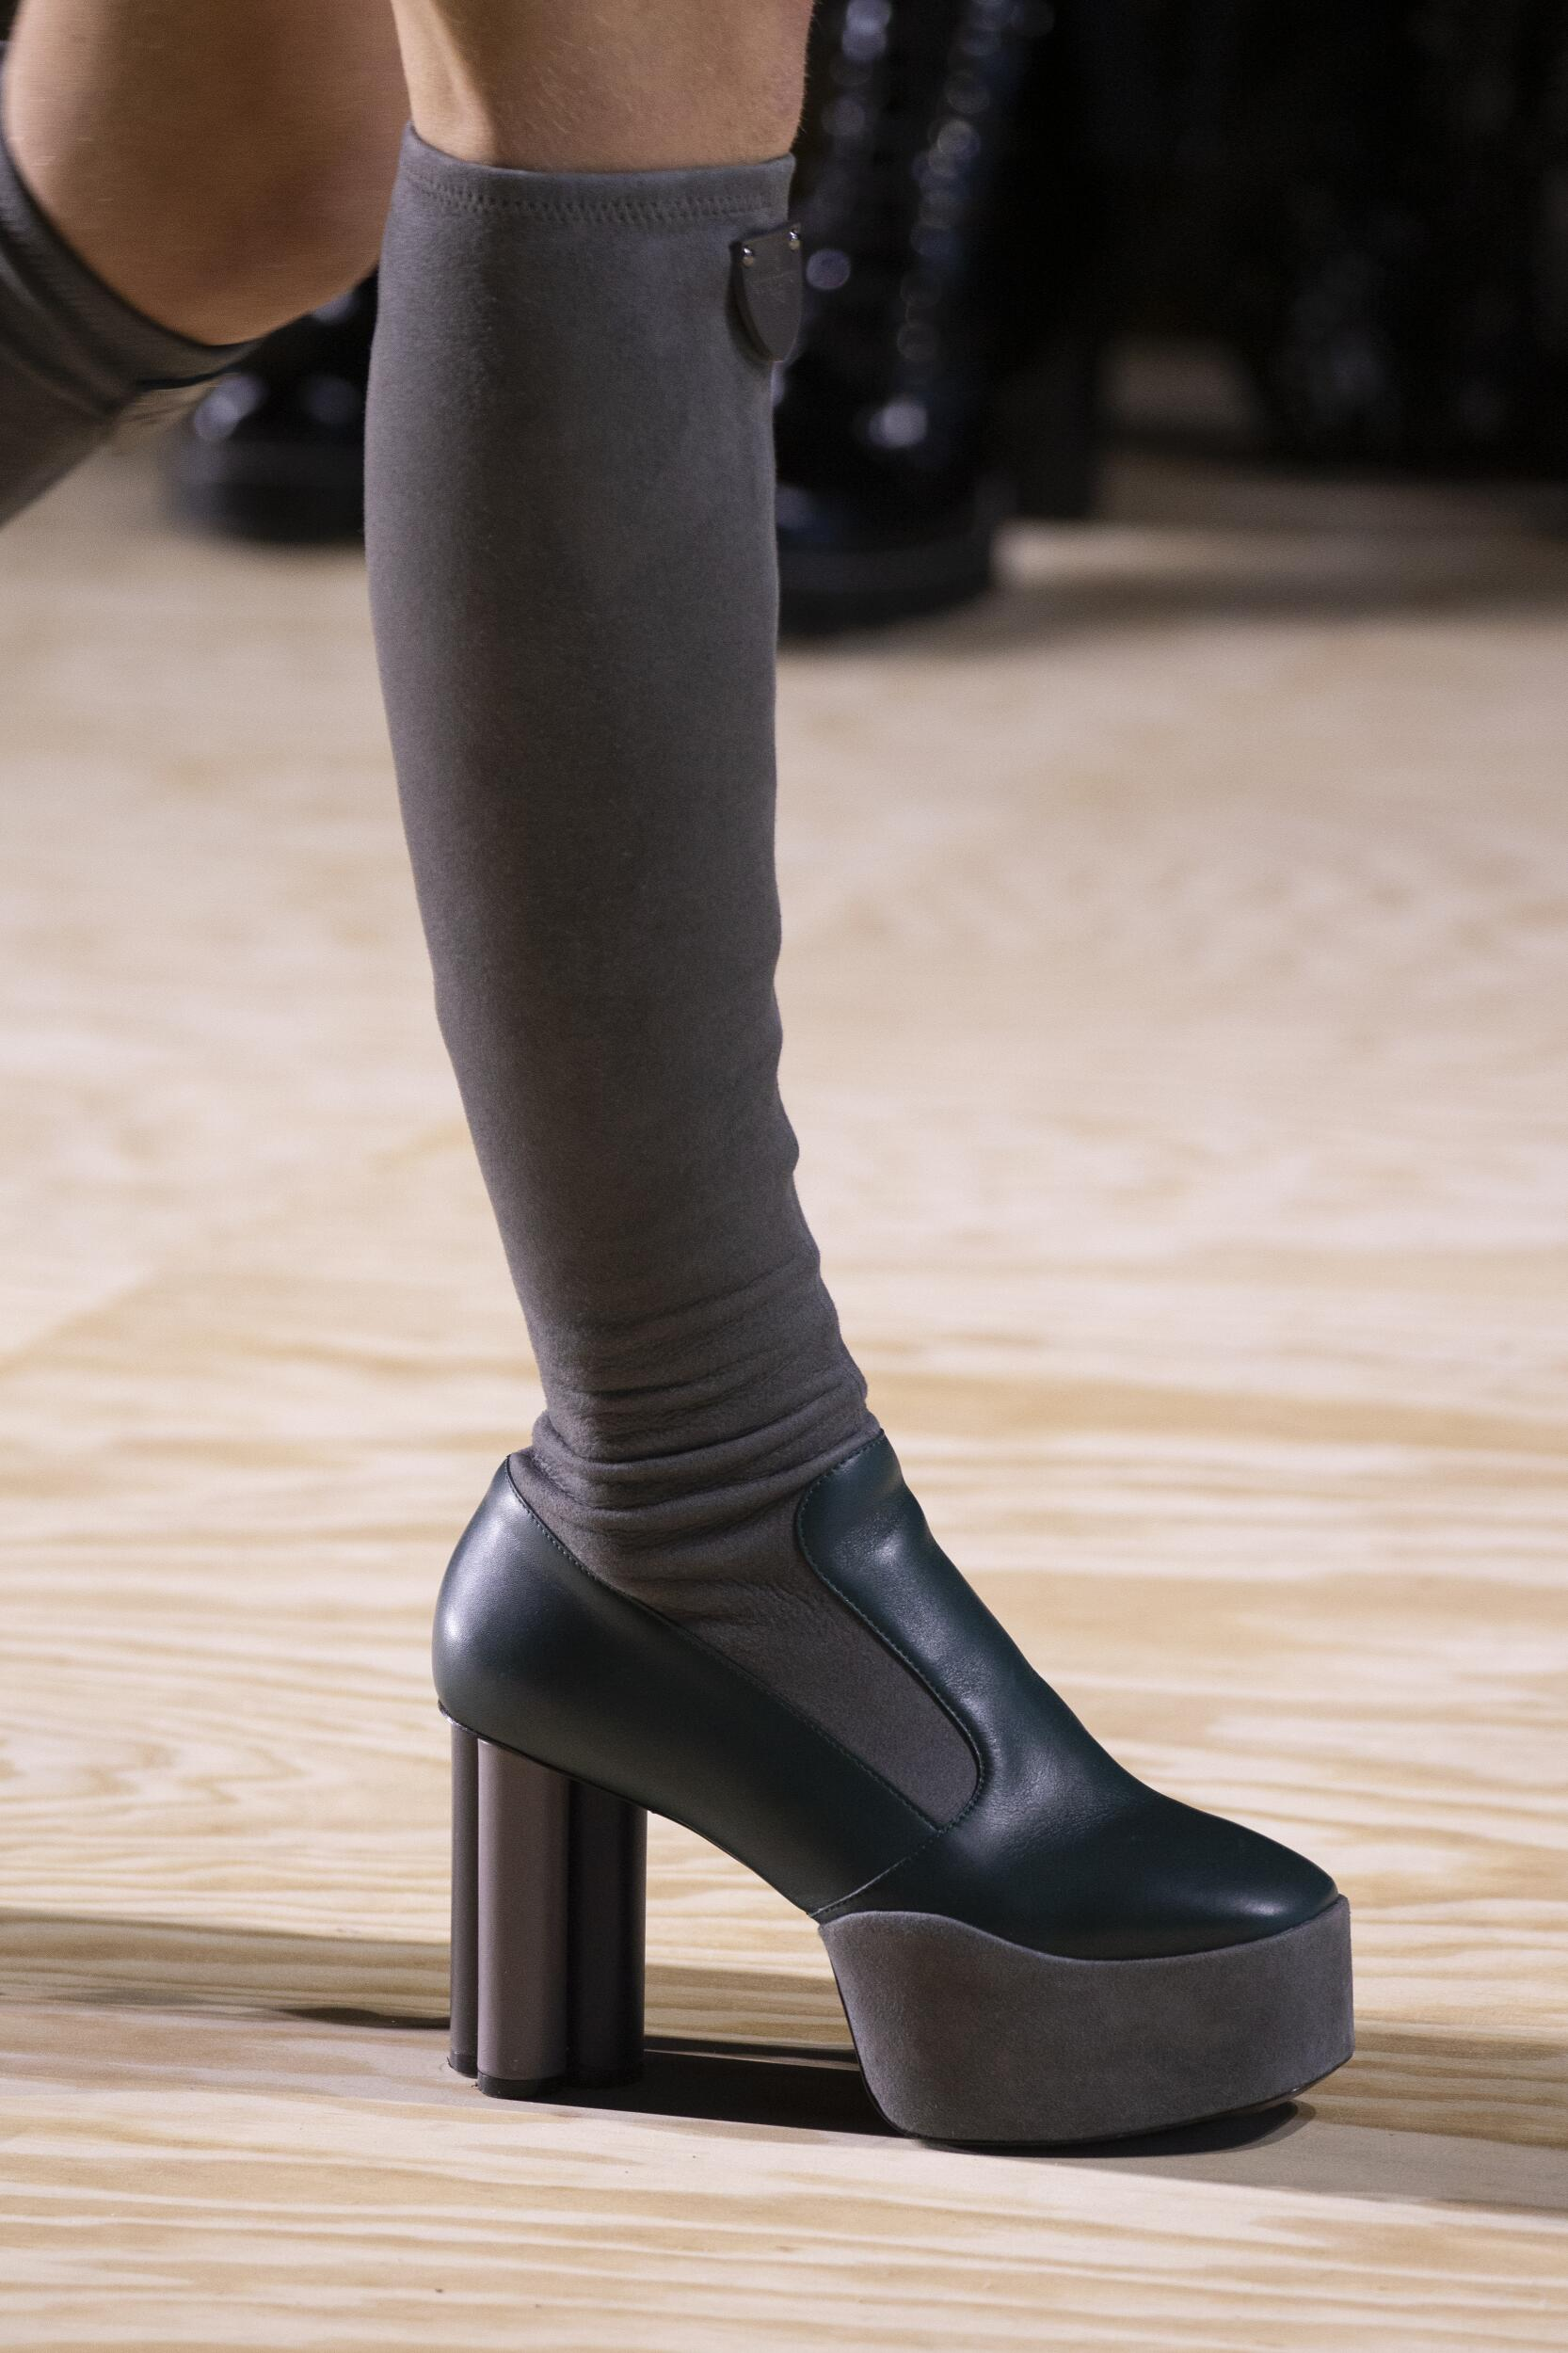 SS 2020 Louis Vuitton Ankle Boot